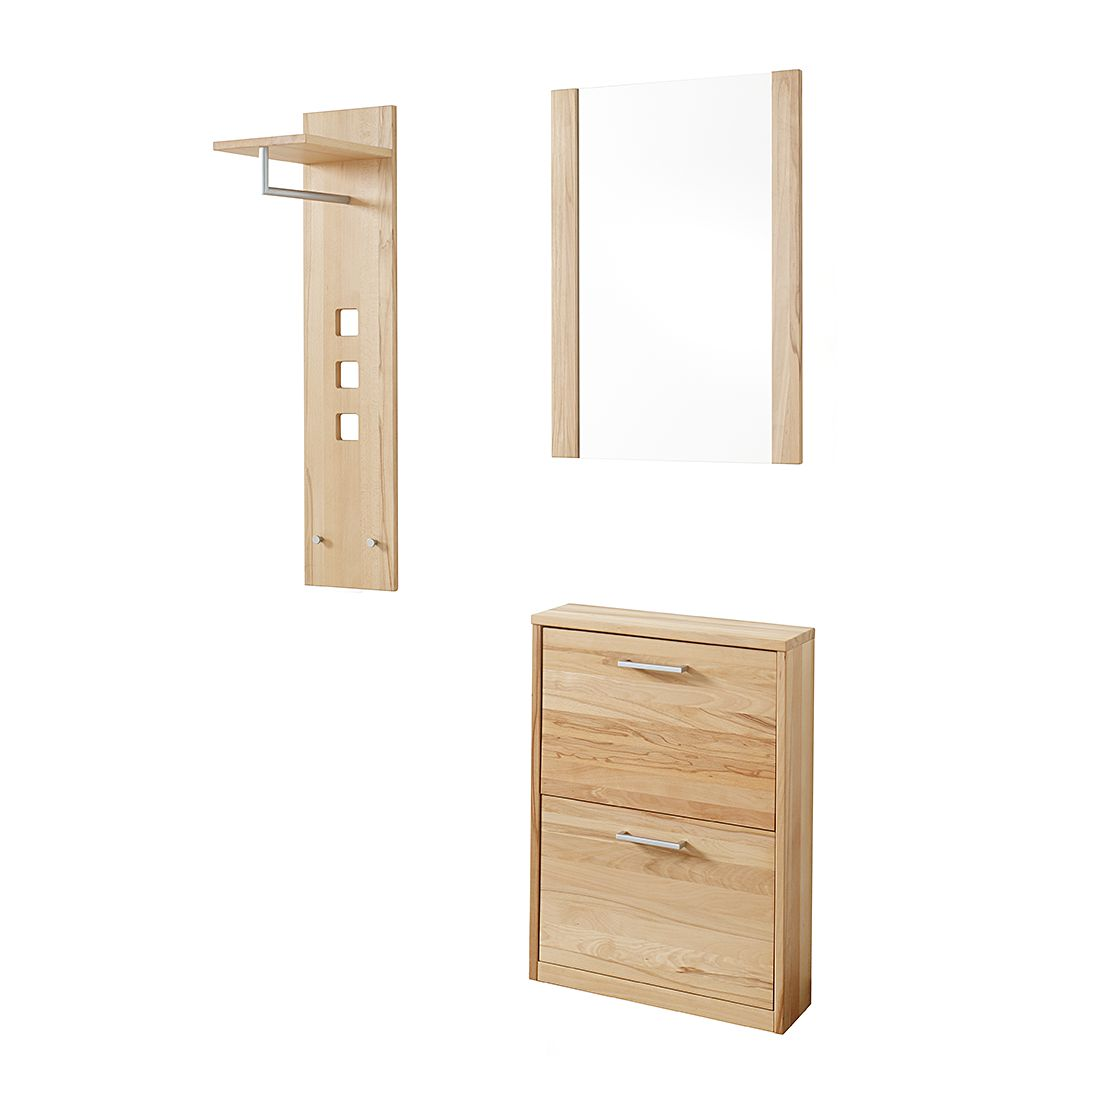 garderobenset woodfull ii 3 teilig kernbuche massiv ge lt. Black Bedroom Furniture Sets. Home Design Ideas